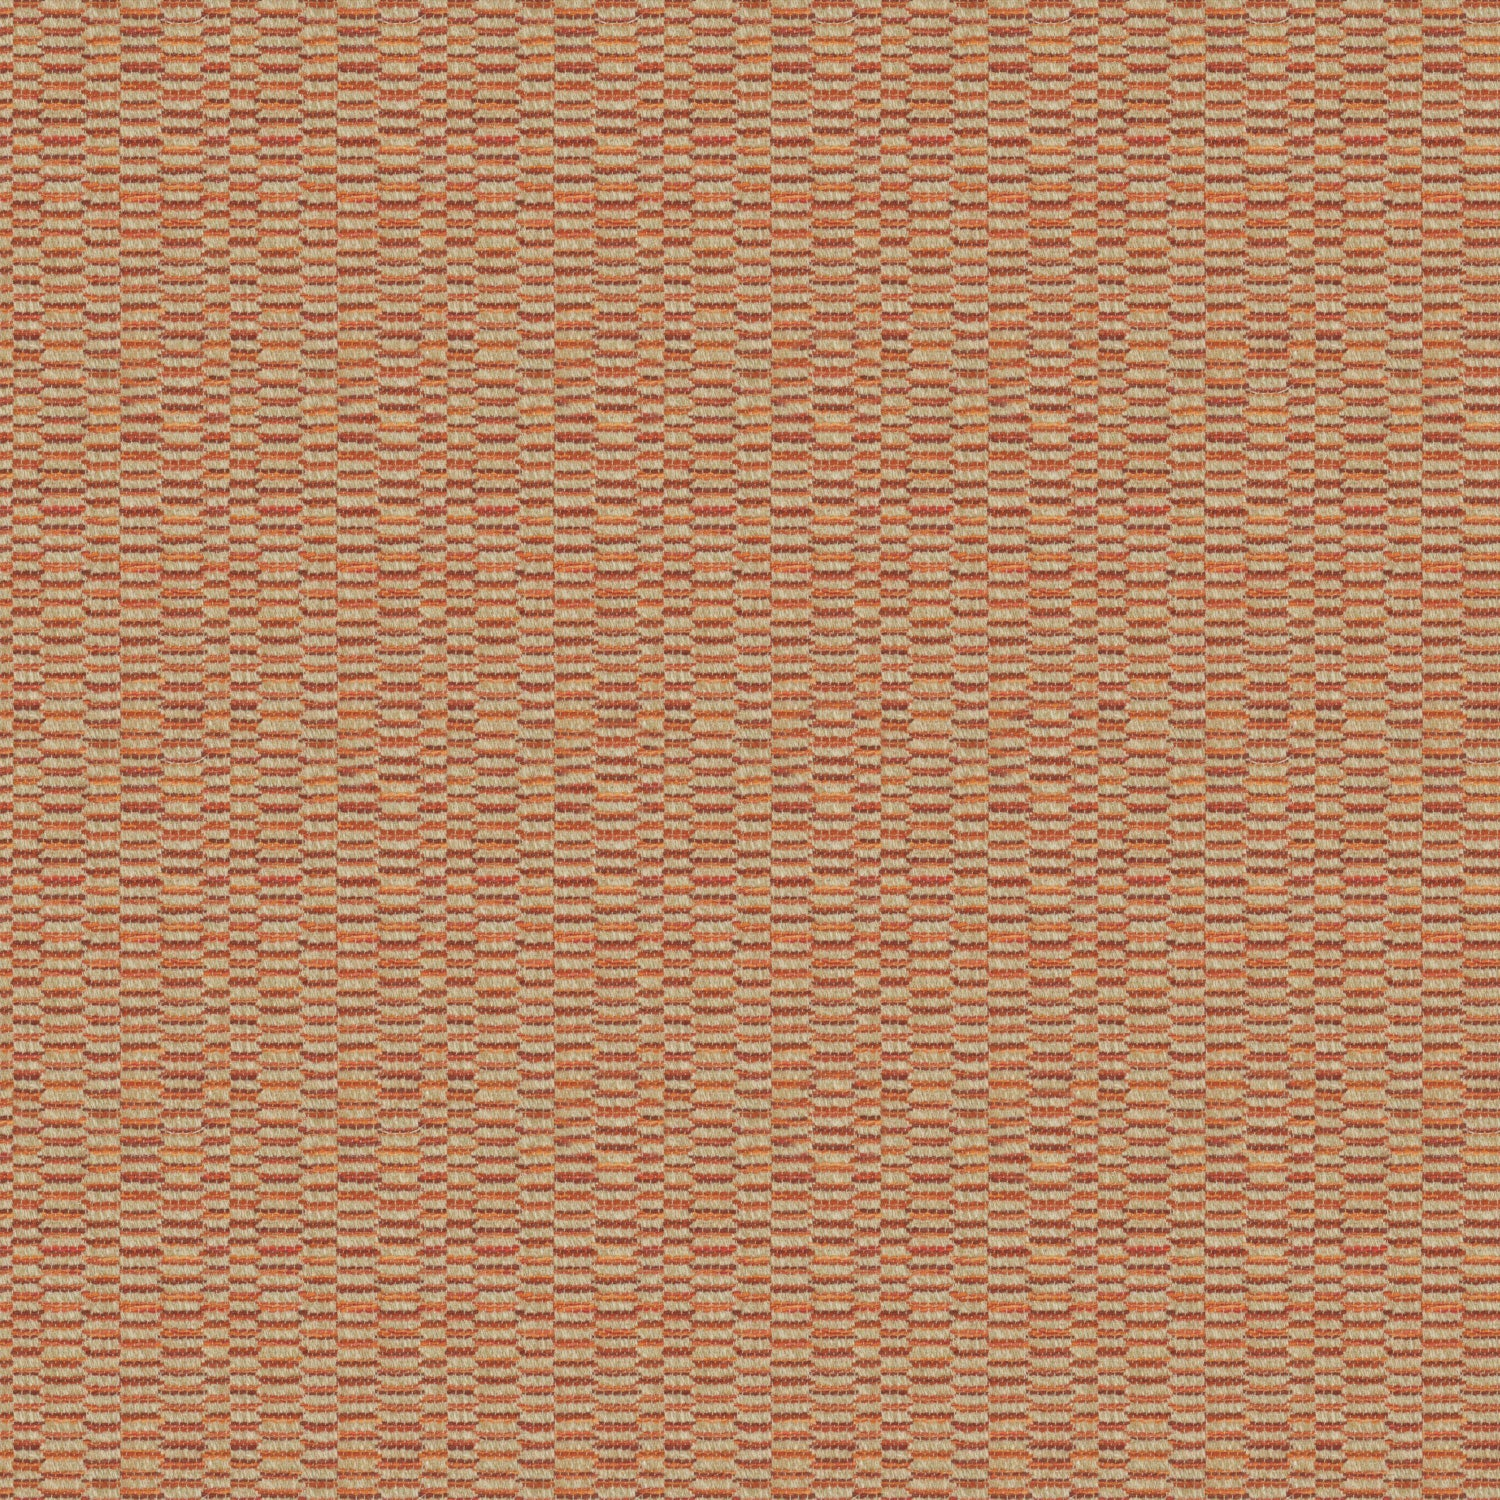 Fabric swatch of a stain resistant weave fabric with a broken stripe design in red colours